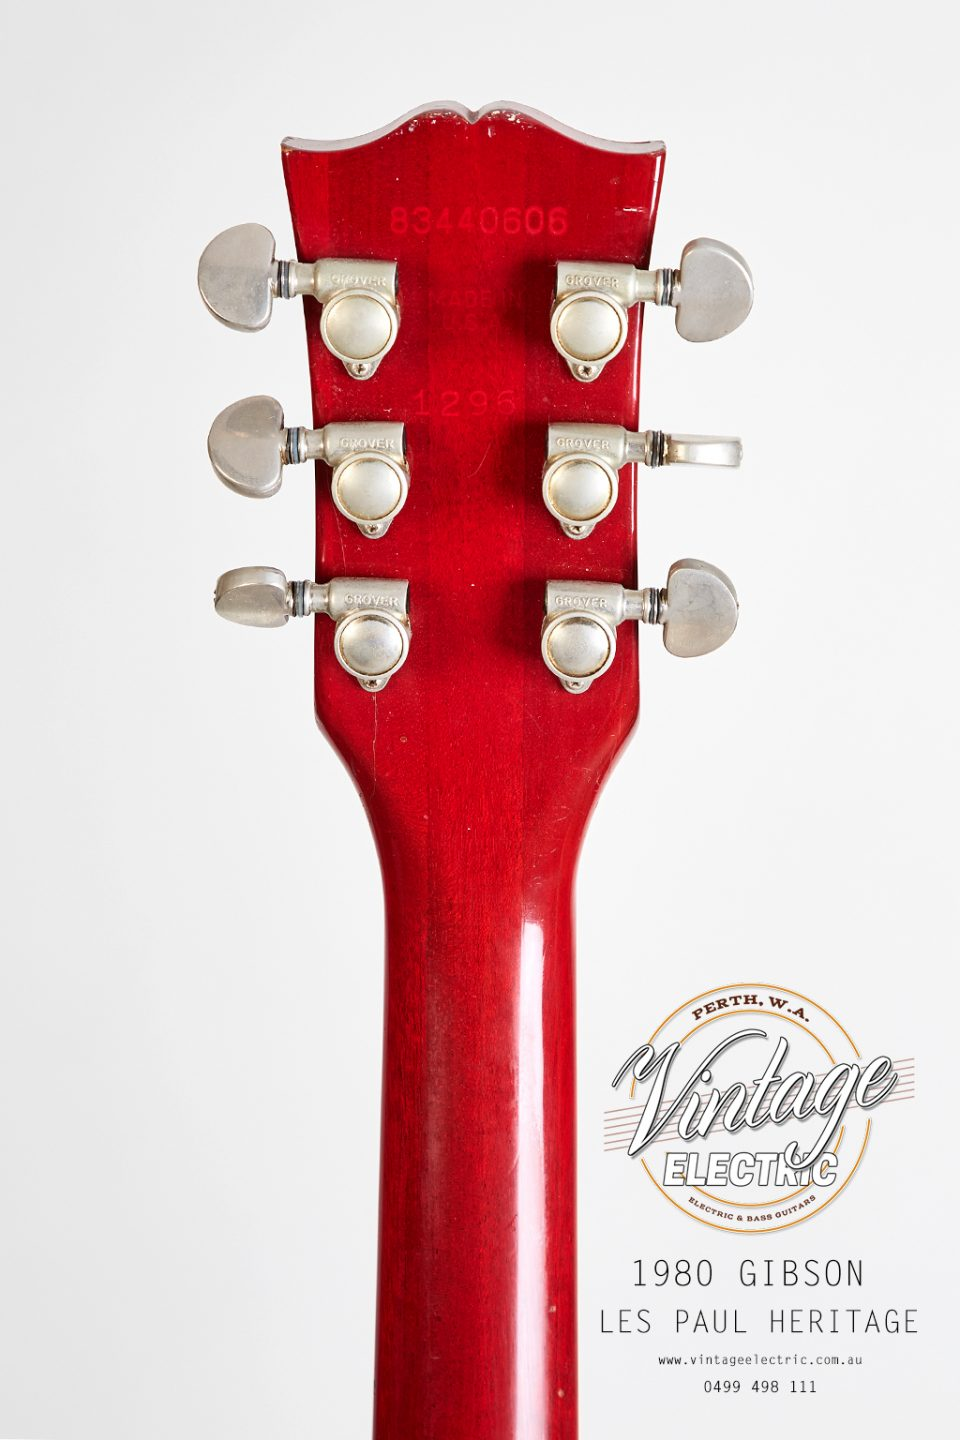 1980 Gibson Les Paul Heritage Back of Headstock